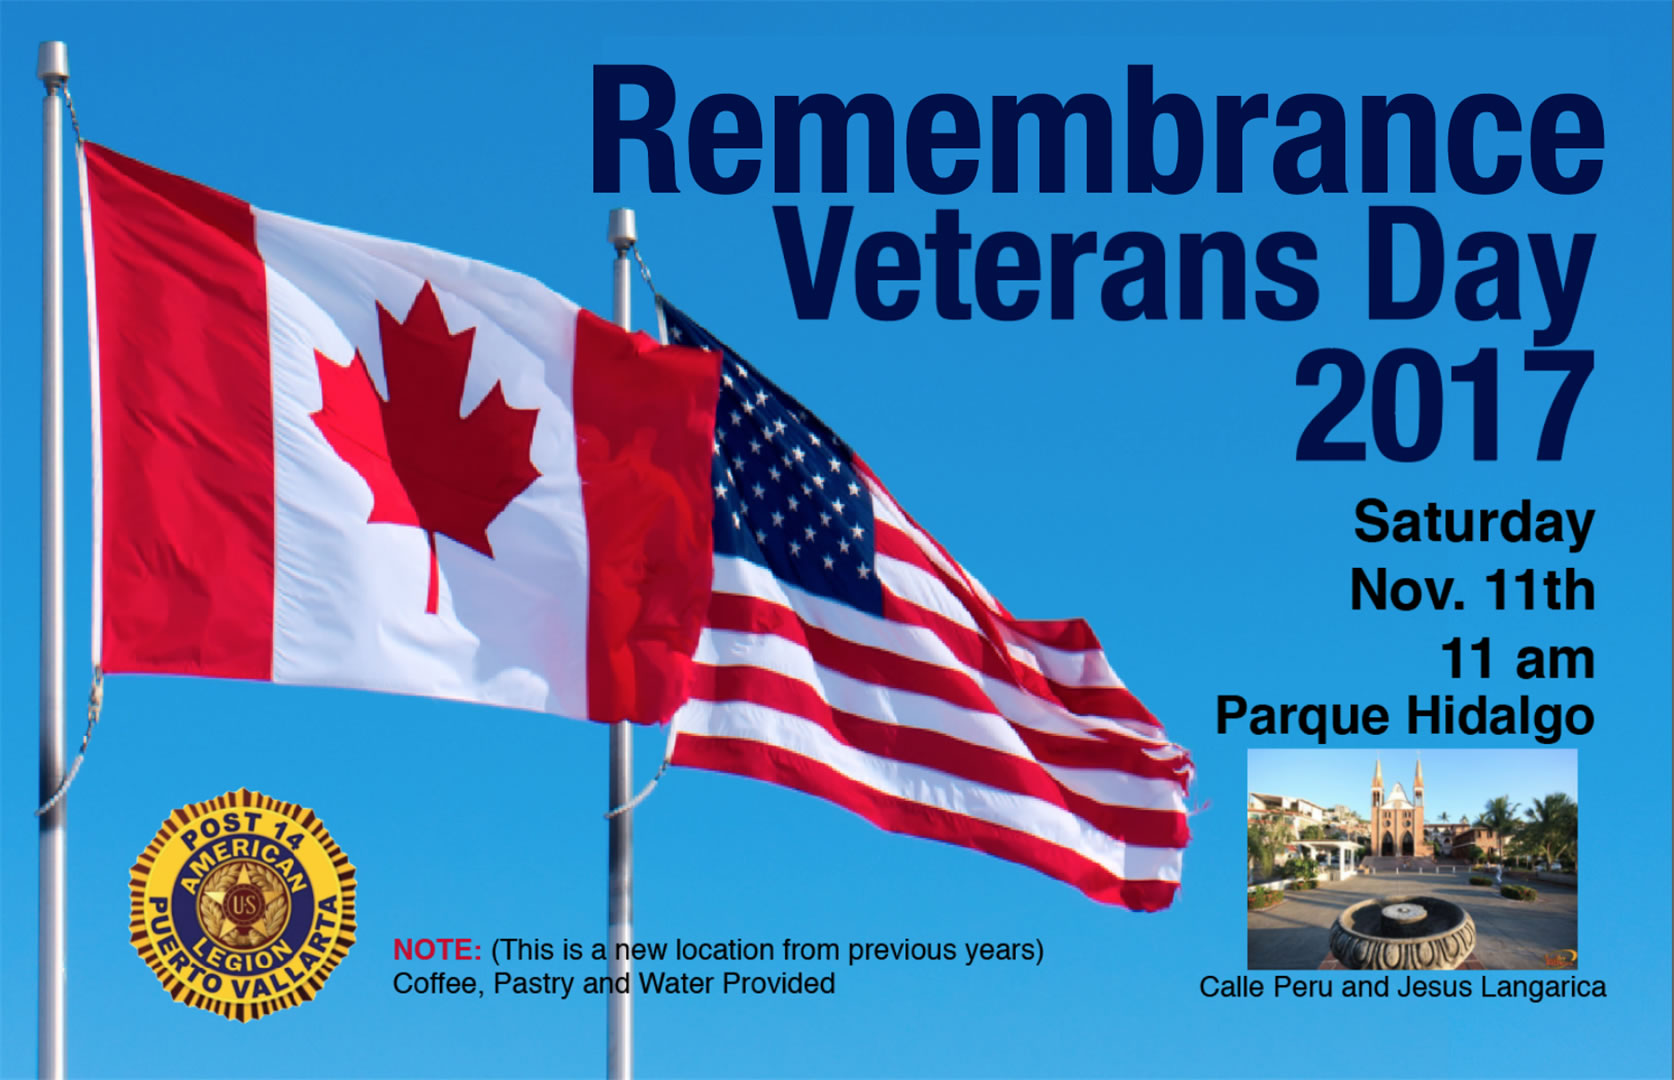 This Saturday, November 11th Remembrance Day & Veterans Day Ceremony at Parque Hidalgo. Location change this year. At the north end of the Malecon. Stop by if you can. Coffee, pastries and water provided.